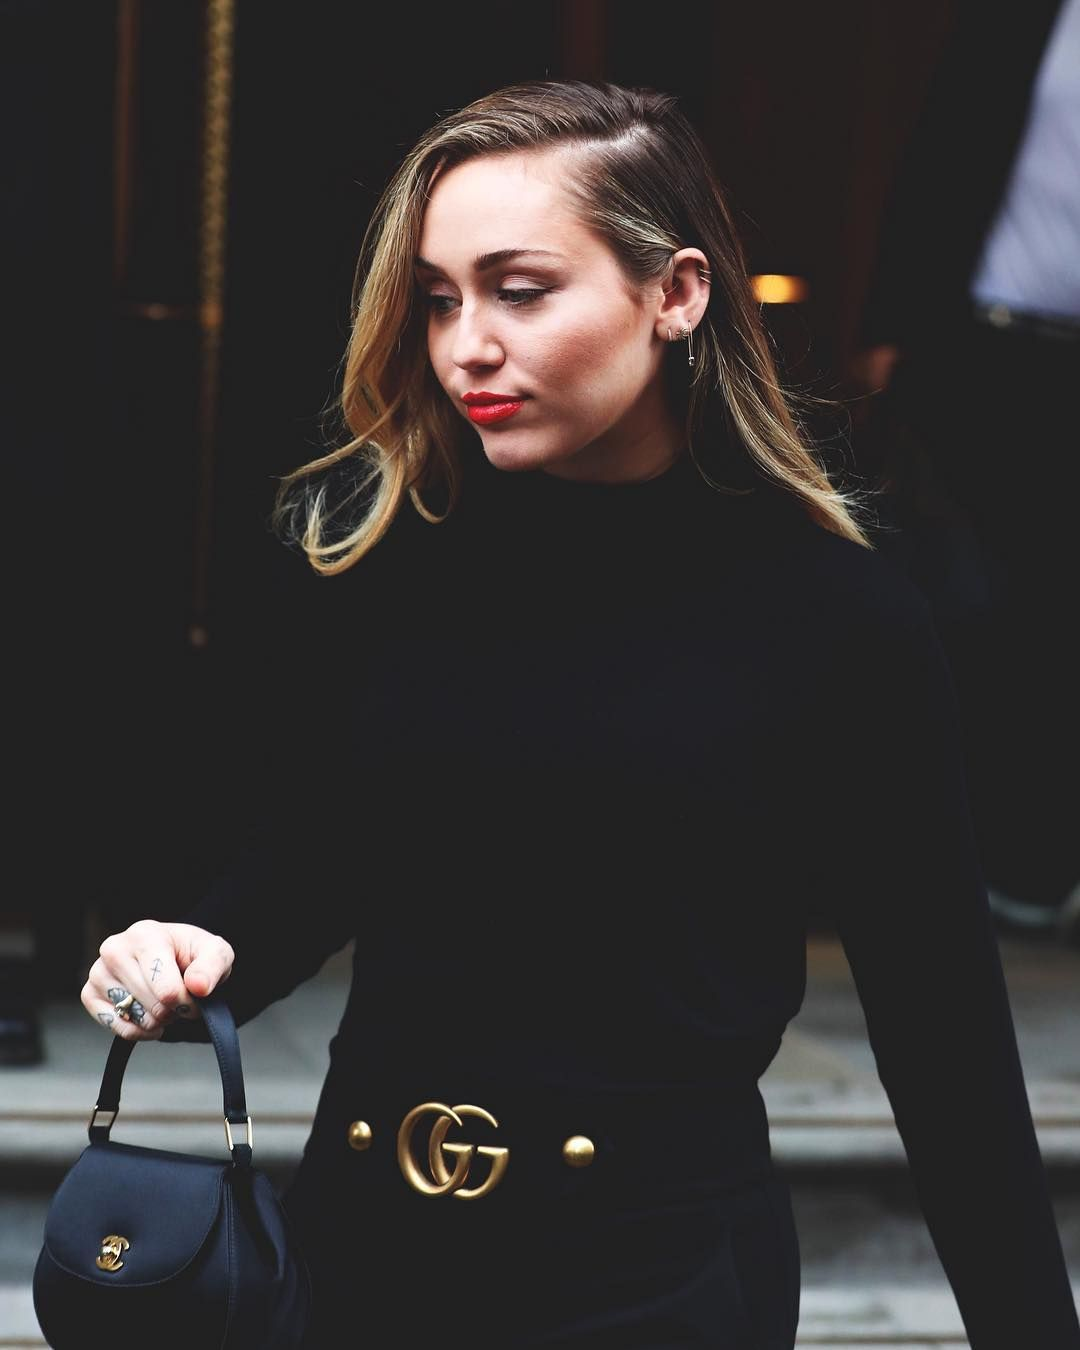 December 5th 2018 Leaving Her Hotel In London Mileycyrus Mileycyrus All Images Are Copyrighted To Their Respect Miley Cyrus Style Miley Miley Cyrus